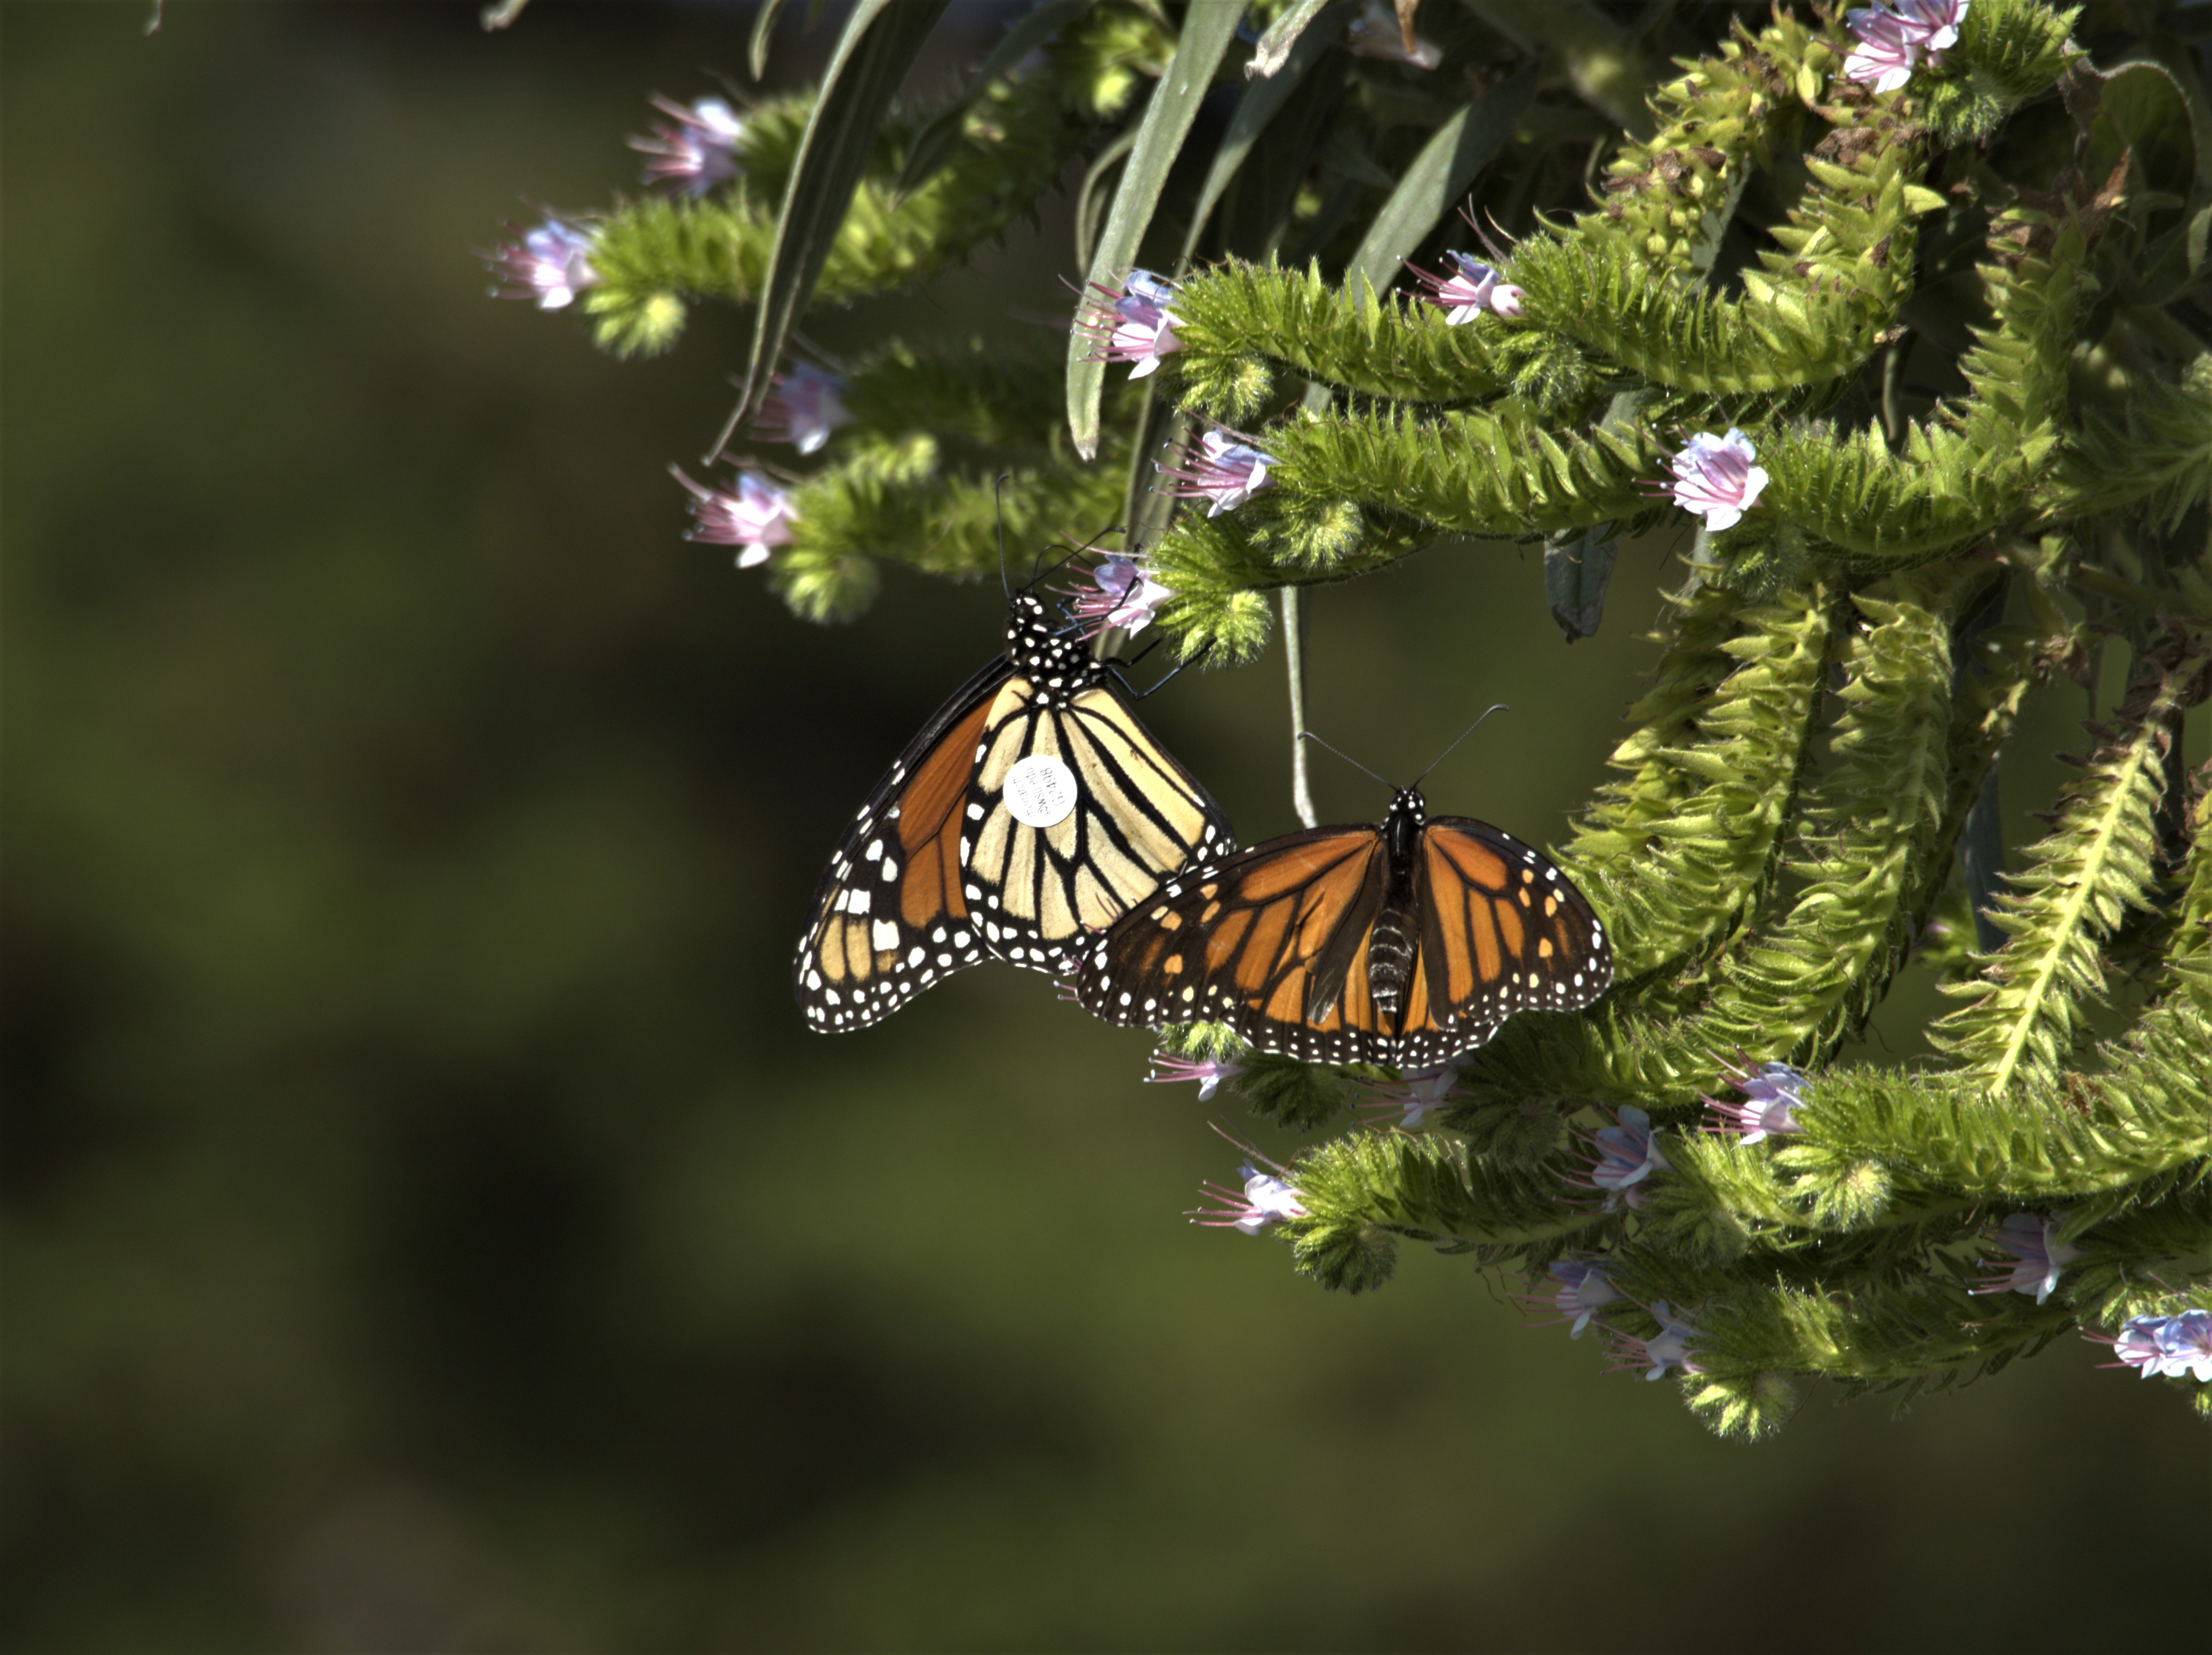 Two monarchs with small, round, white tags on their wings perch on bright green branches tipped with small, pale purple flowers.